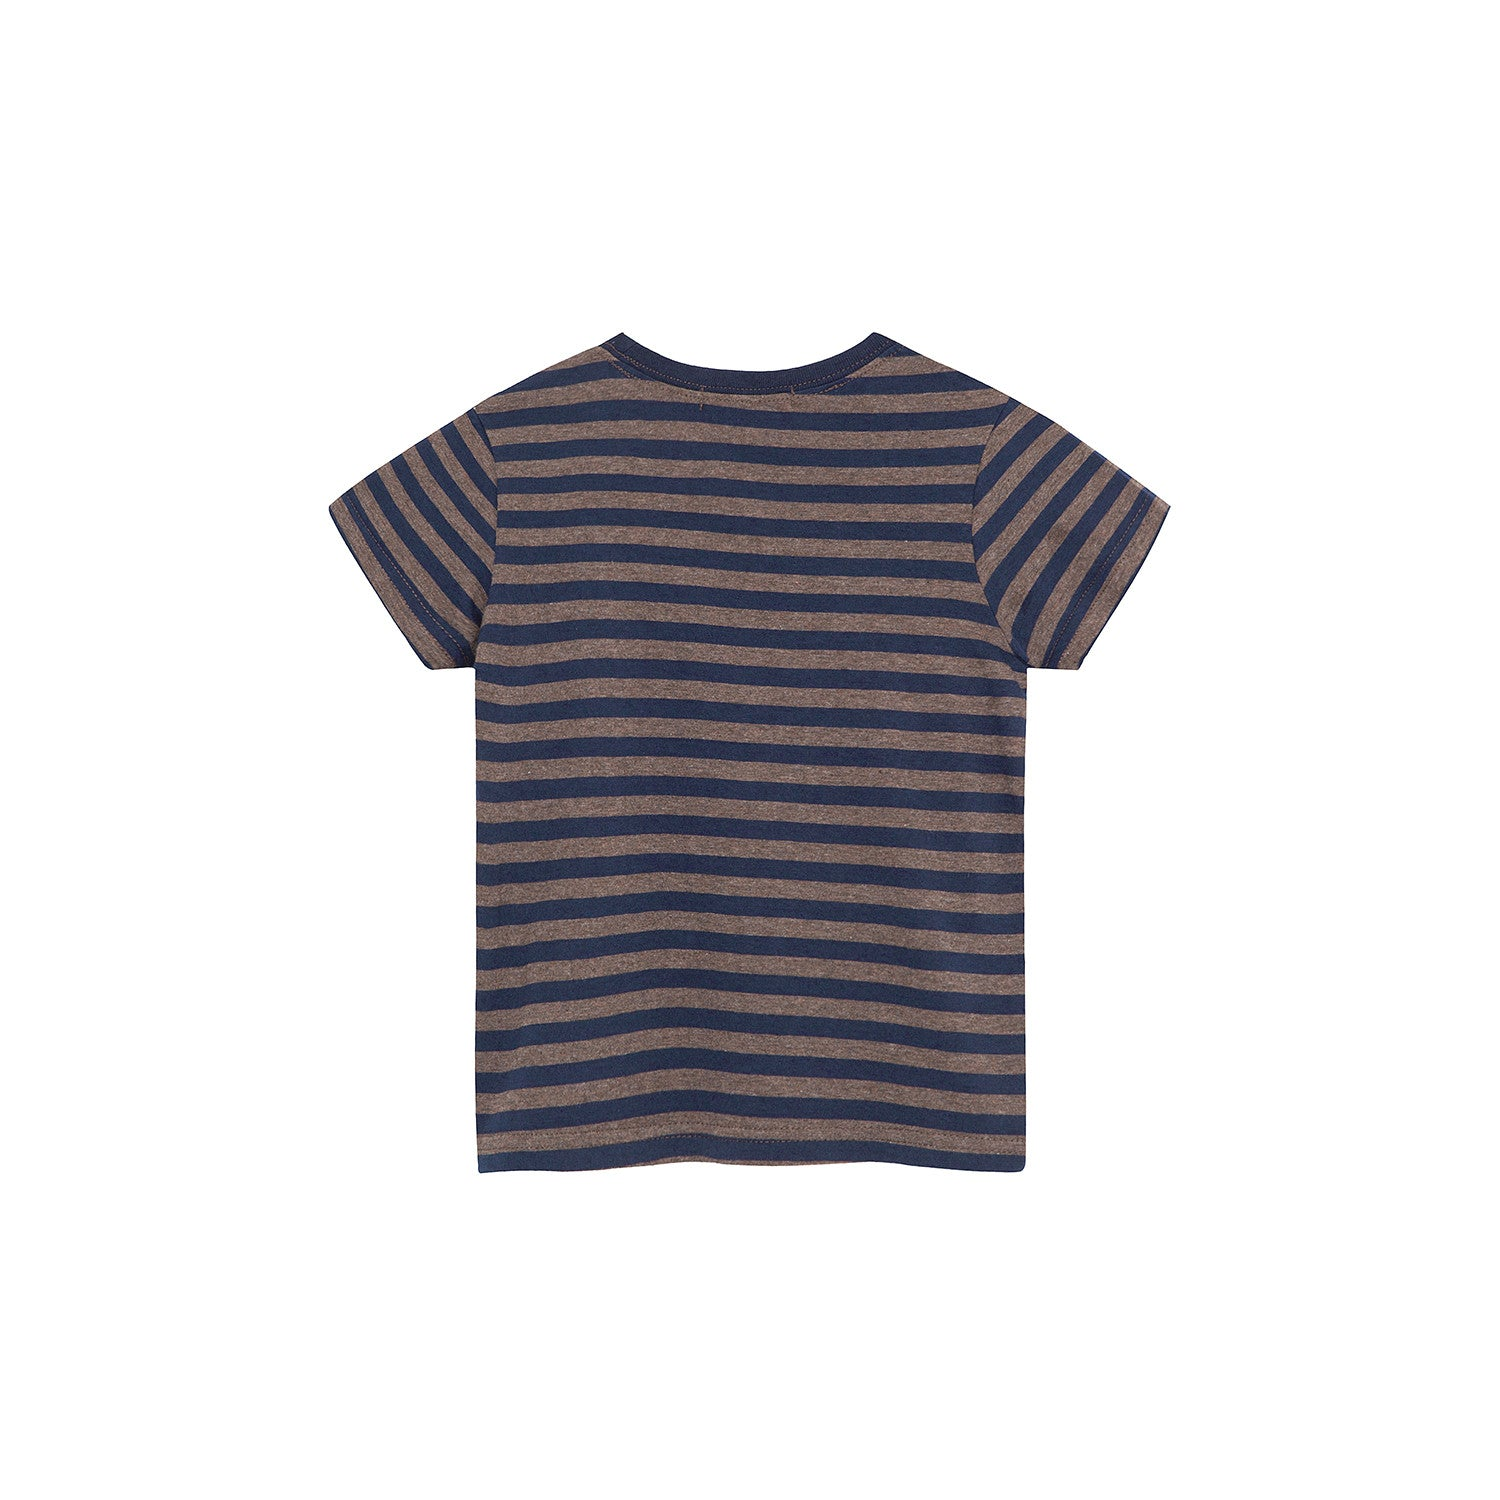 Bene Bene Deep Brown Stripe Oui Tee